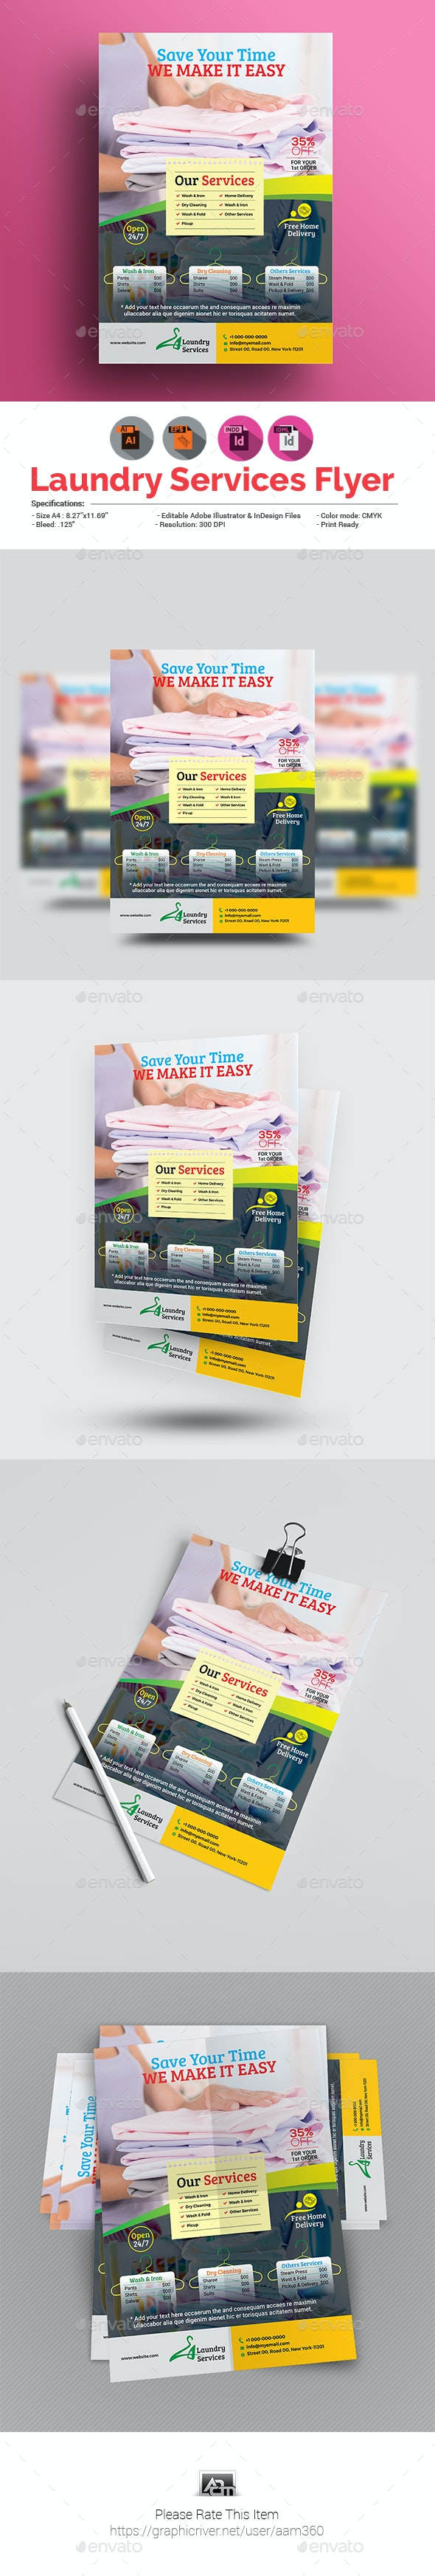 Laundry Flyer Template - Commerce Flyers